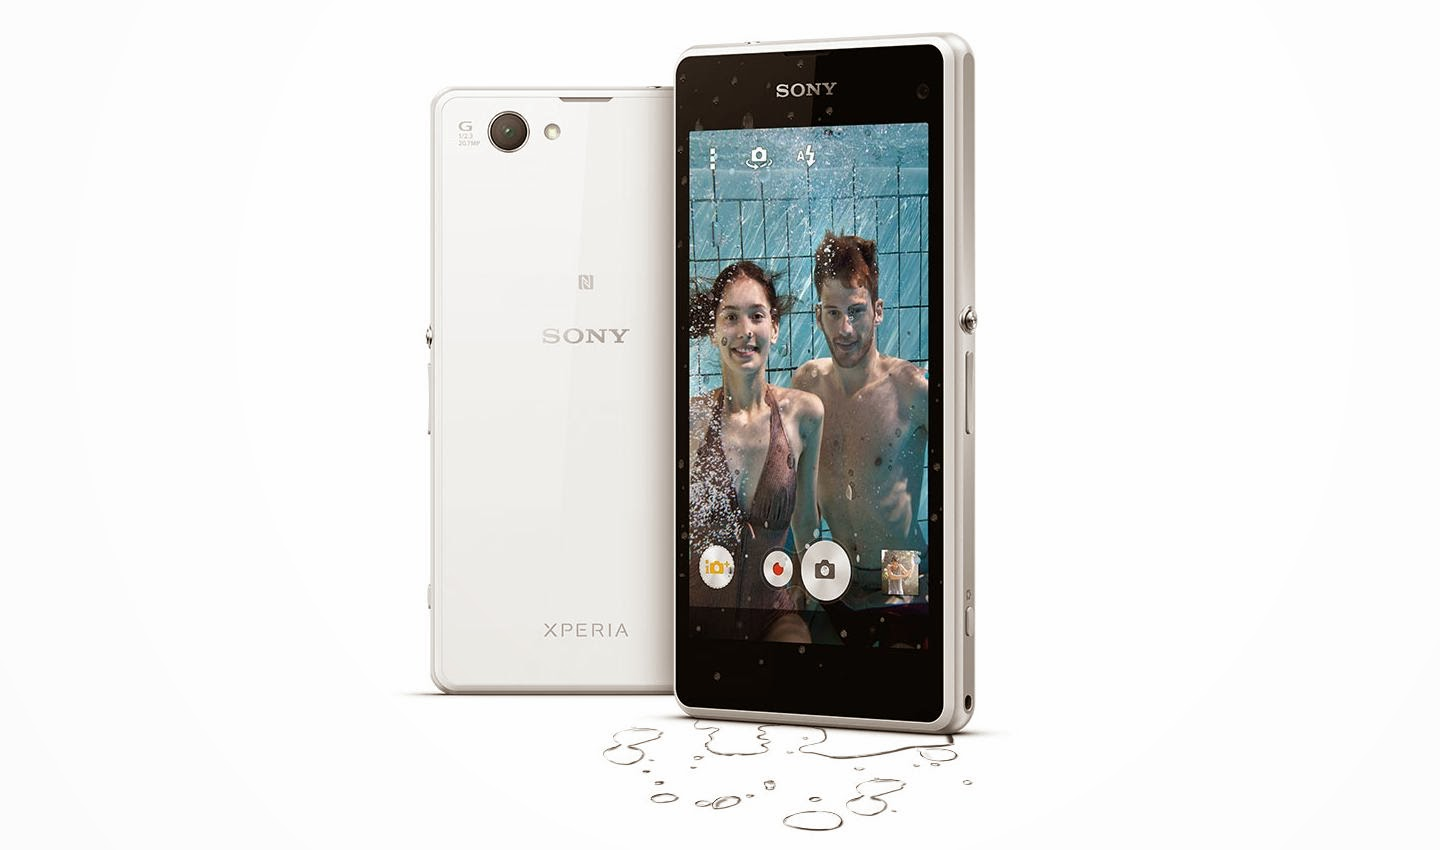 Thomas sony xperia z1 compact review indonesia Event